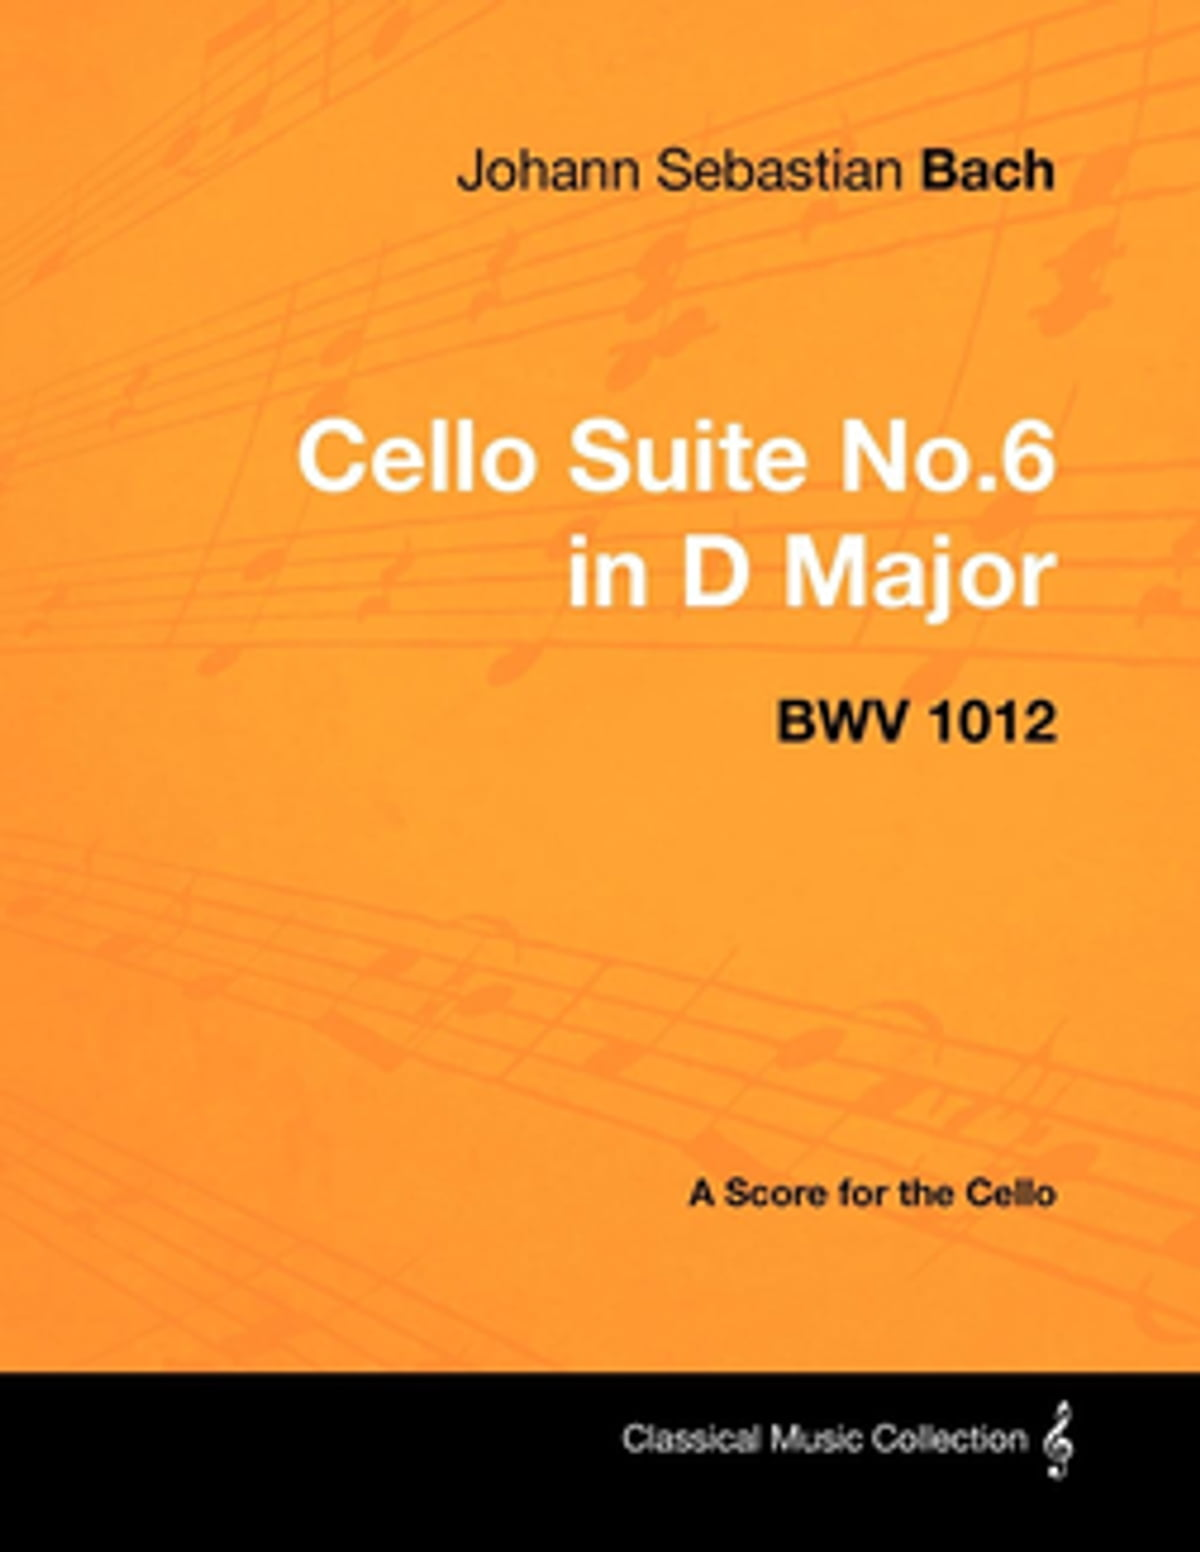 Johann Sebastian Bach - Cello Suite No 6 in D Major - BWV 1012 - A Score  for the Cello ebook by Johann Sebastian Bach - Rakuten Kobo